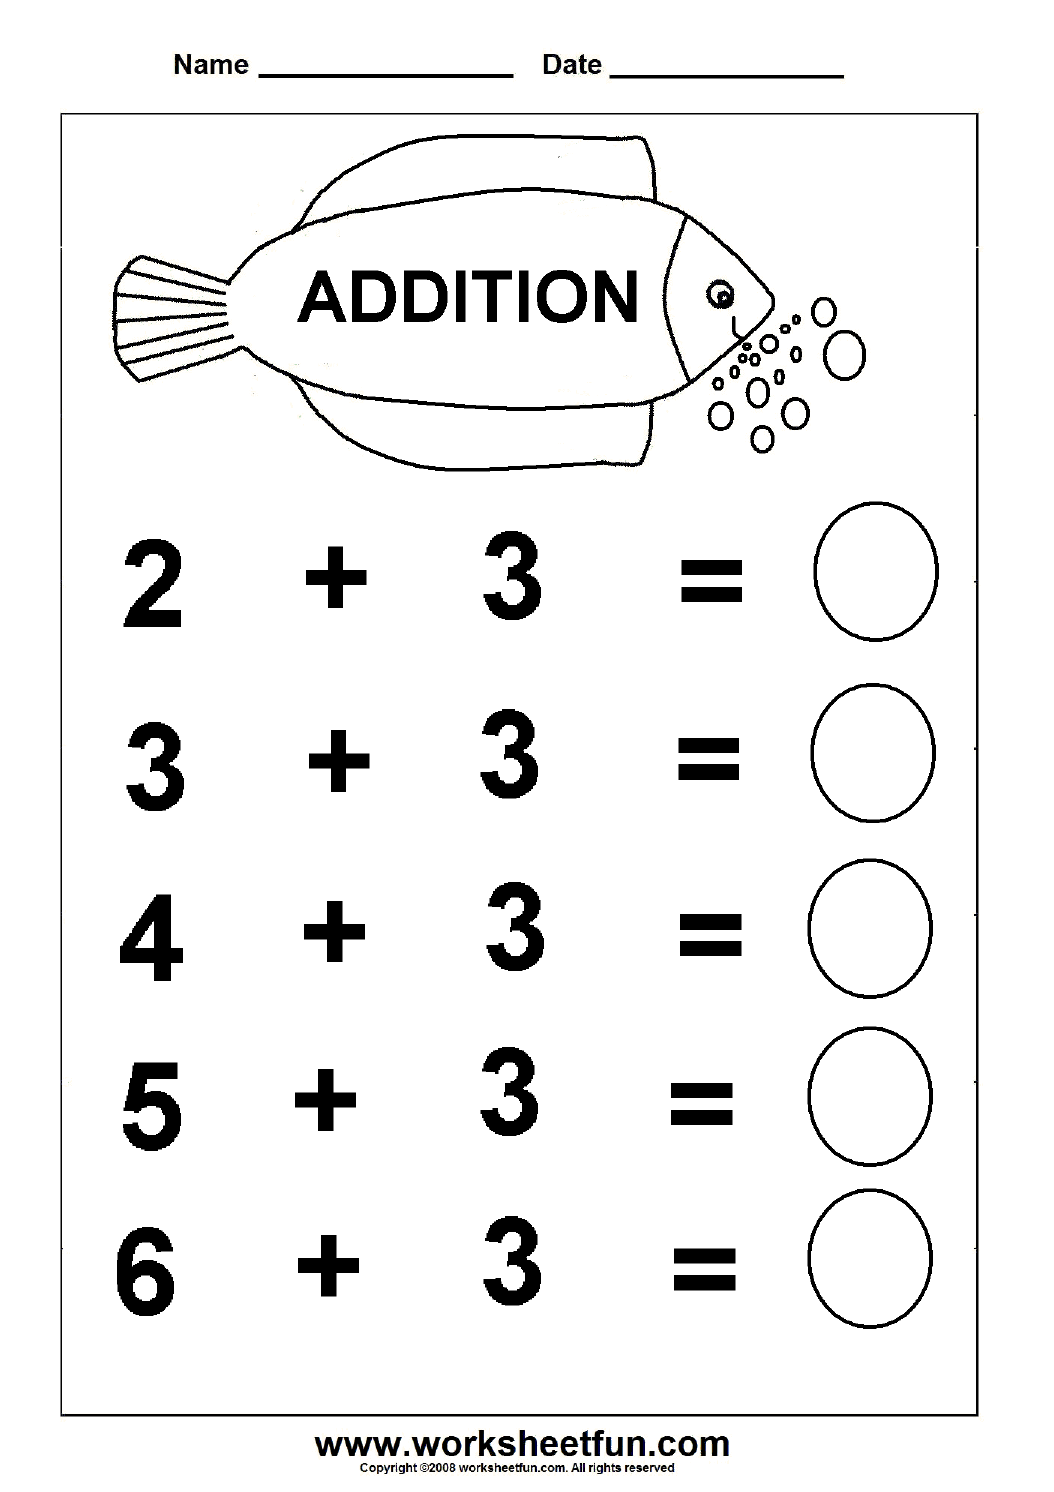 Worksheet Preschool Addition beginner addition 6 kindergarten worksheets free subtraction worksheets